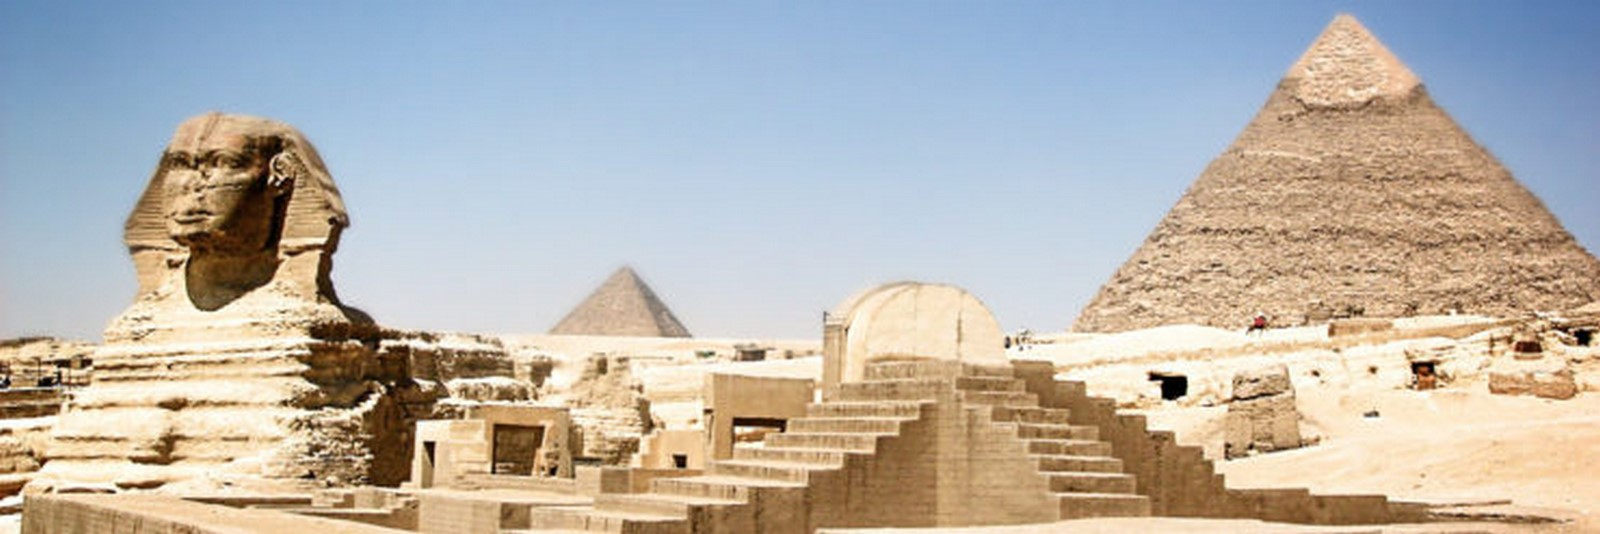 Ancient Egyptian architecture: style defined by Time - Sheet1